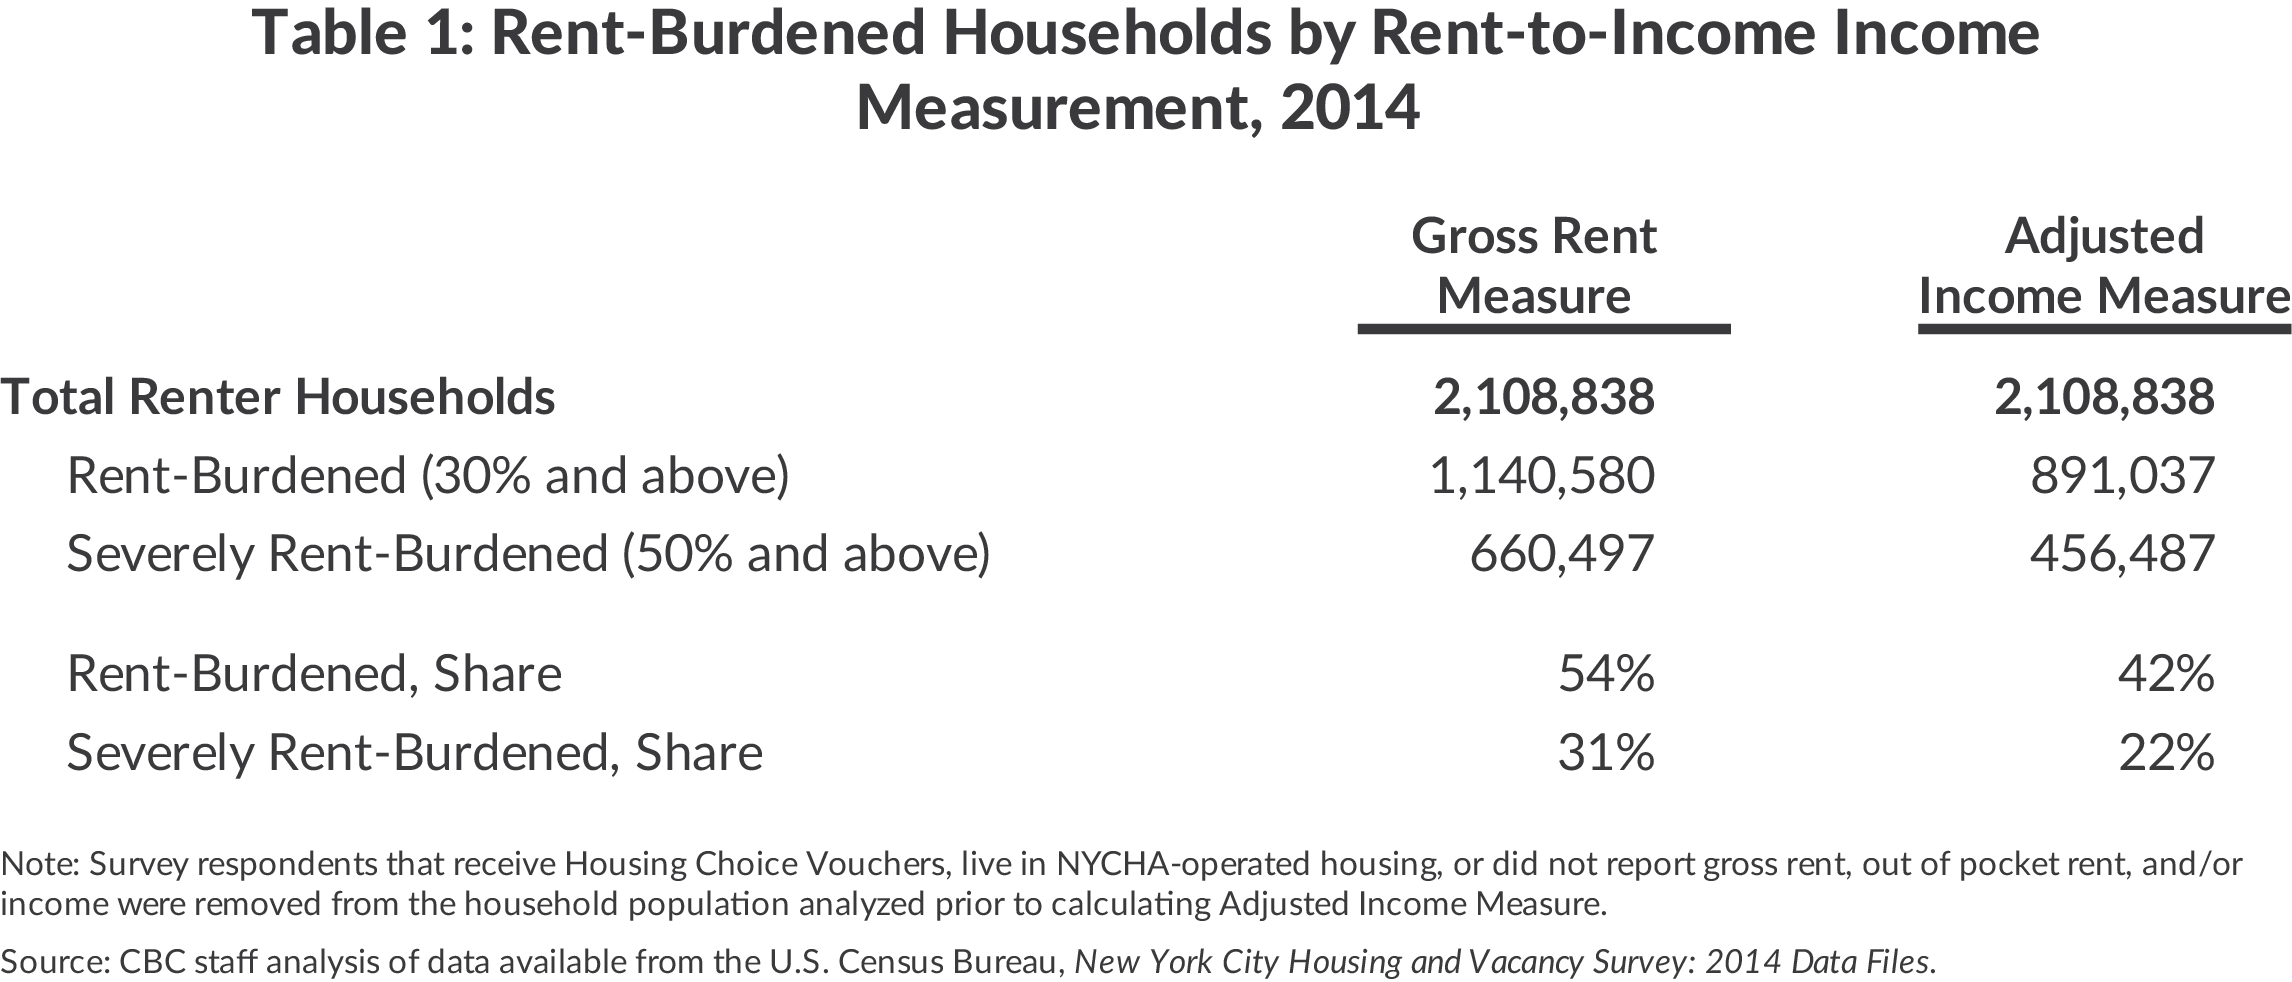 Table 1: Rent-Burdened Households by Rent-to-Income IncomeMeasurement, 2014